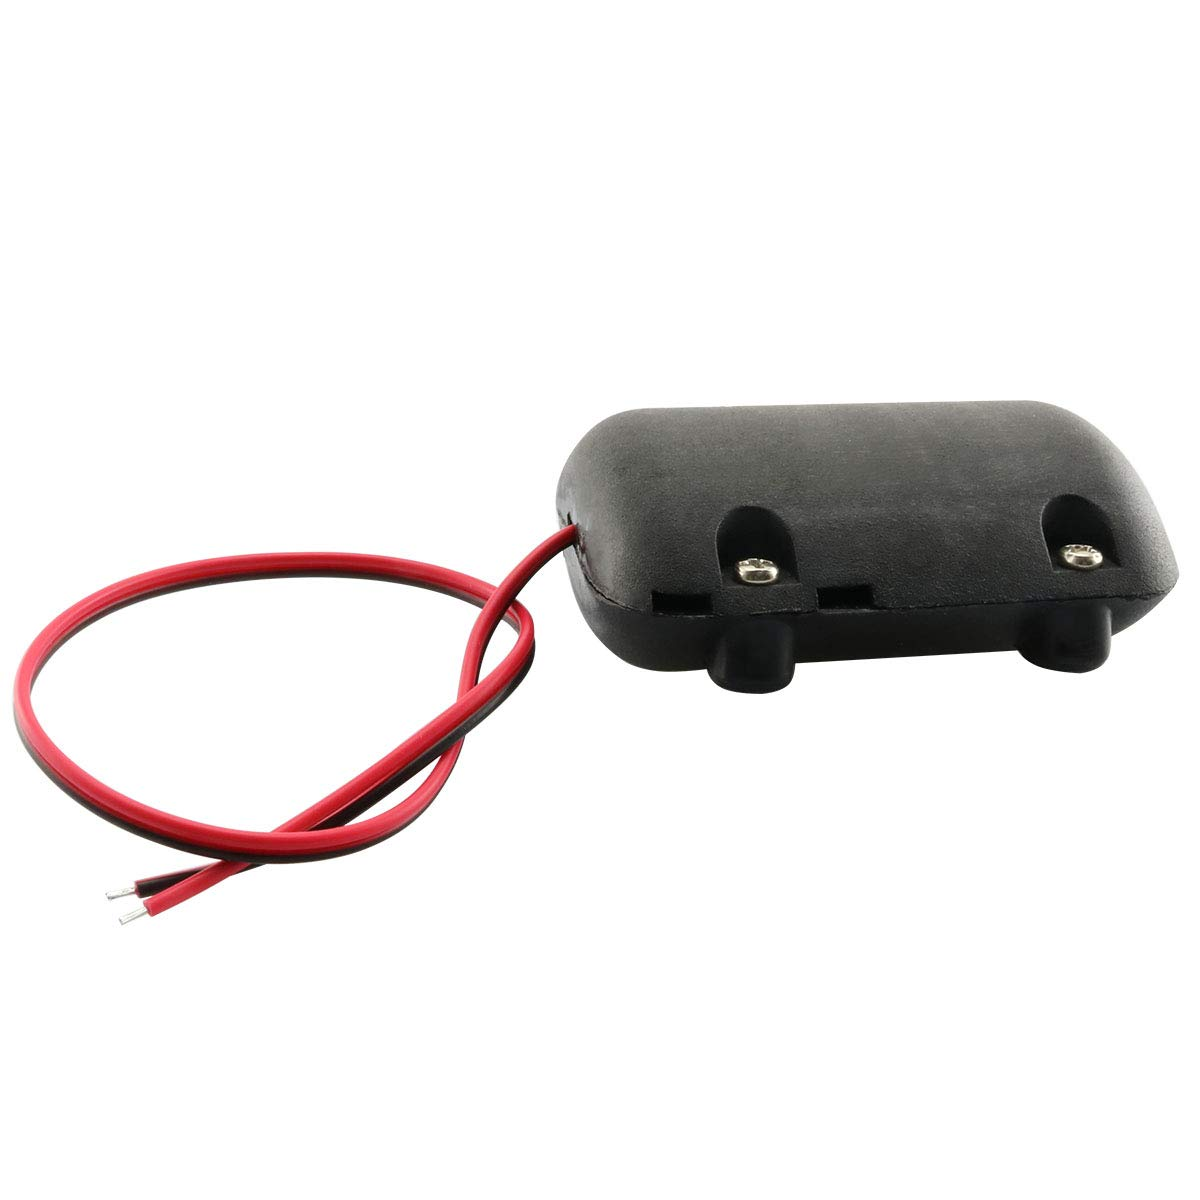 uxcell Vibration Motors DC 12V 170mA 4800RPM Vibrating Motor Strong Power for DIY Electric Massager 79x35.5mm